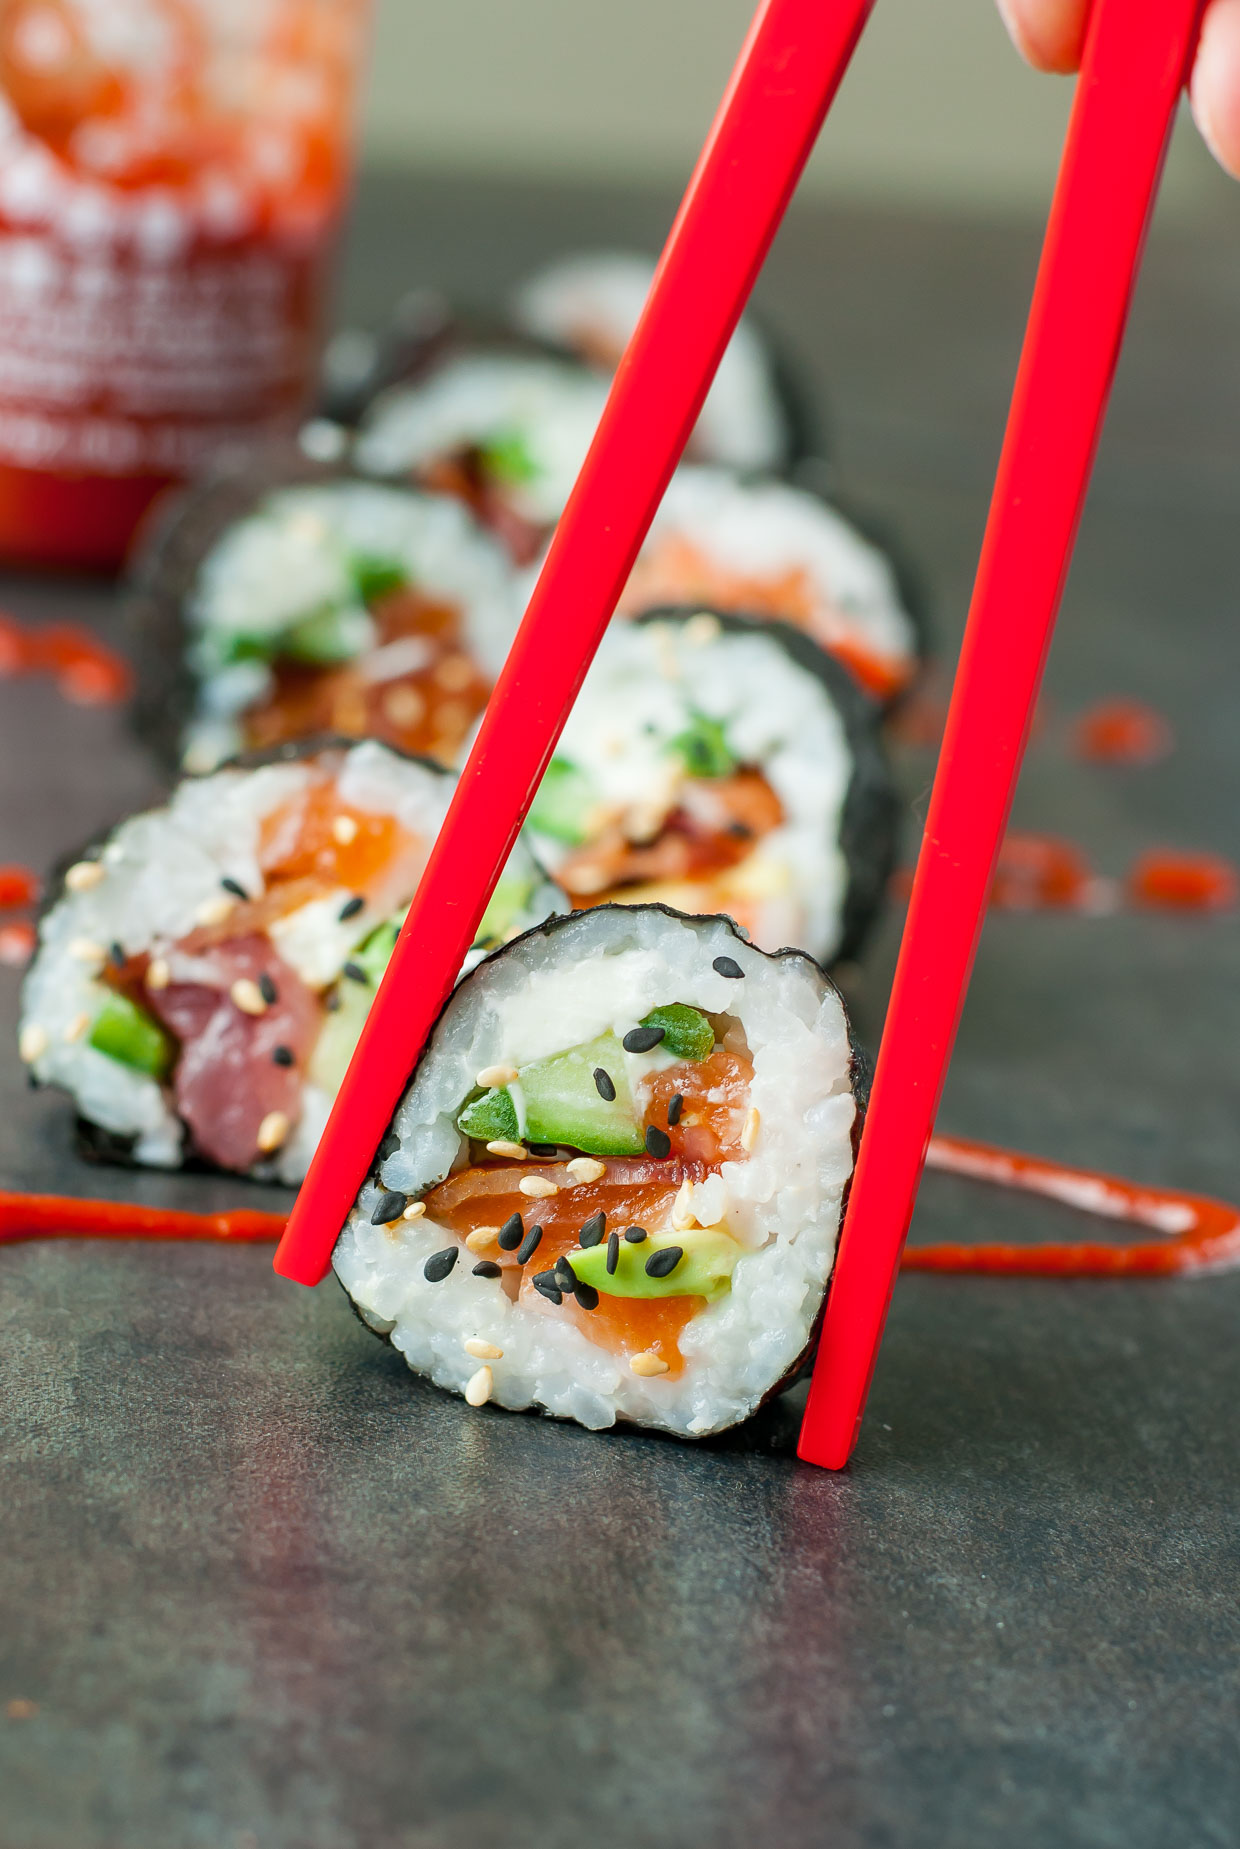 Homemade Sushi -- These Bacon Avocado Sushi Rolls are a bit unconventional but SO INSANELY TASTY!